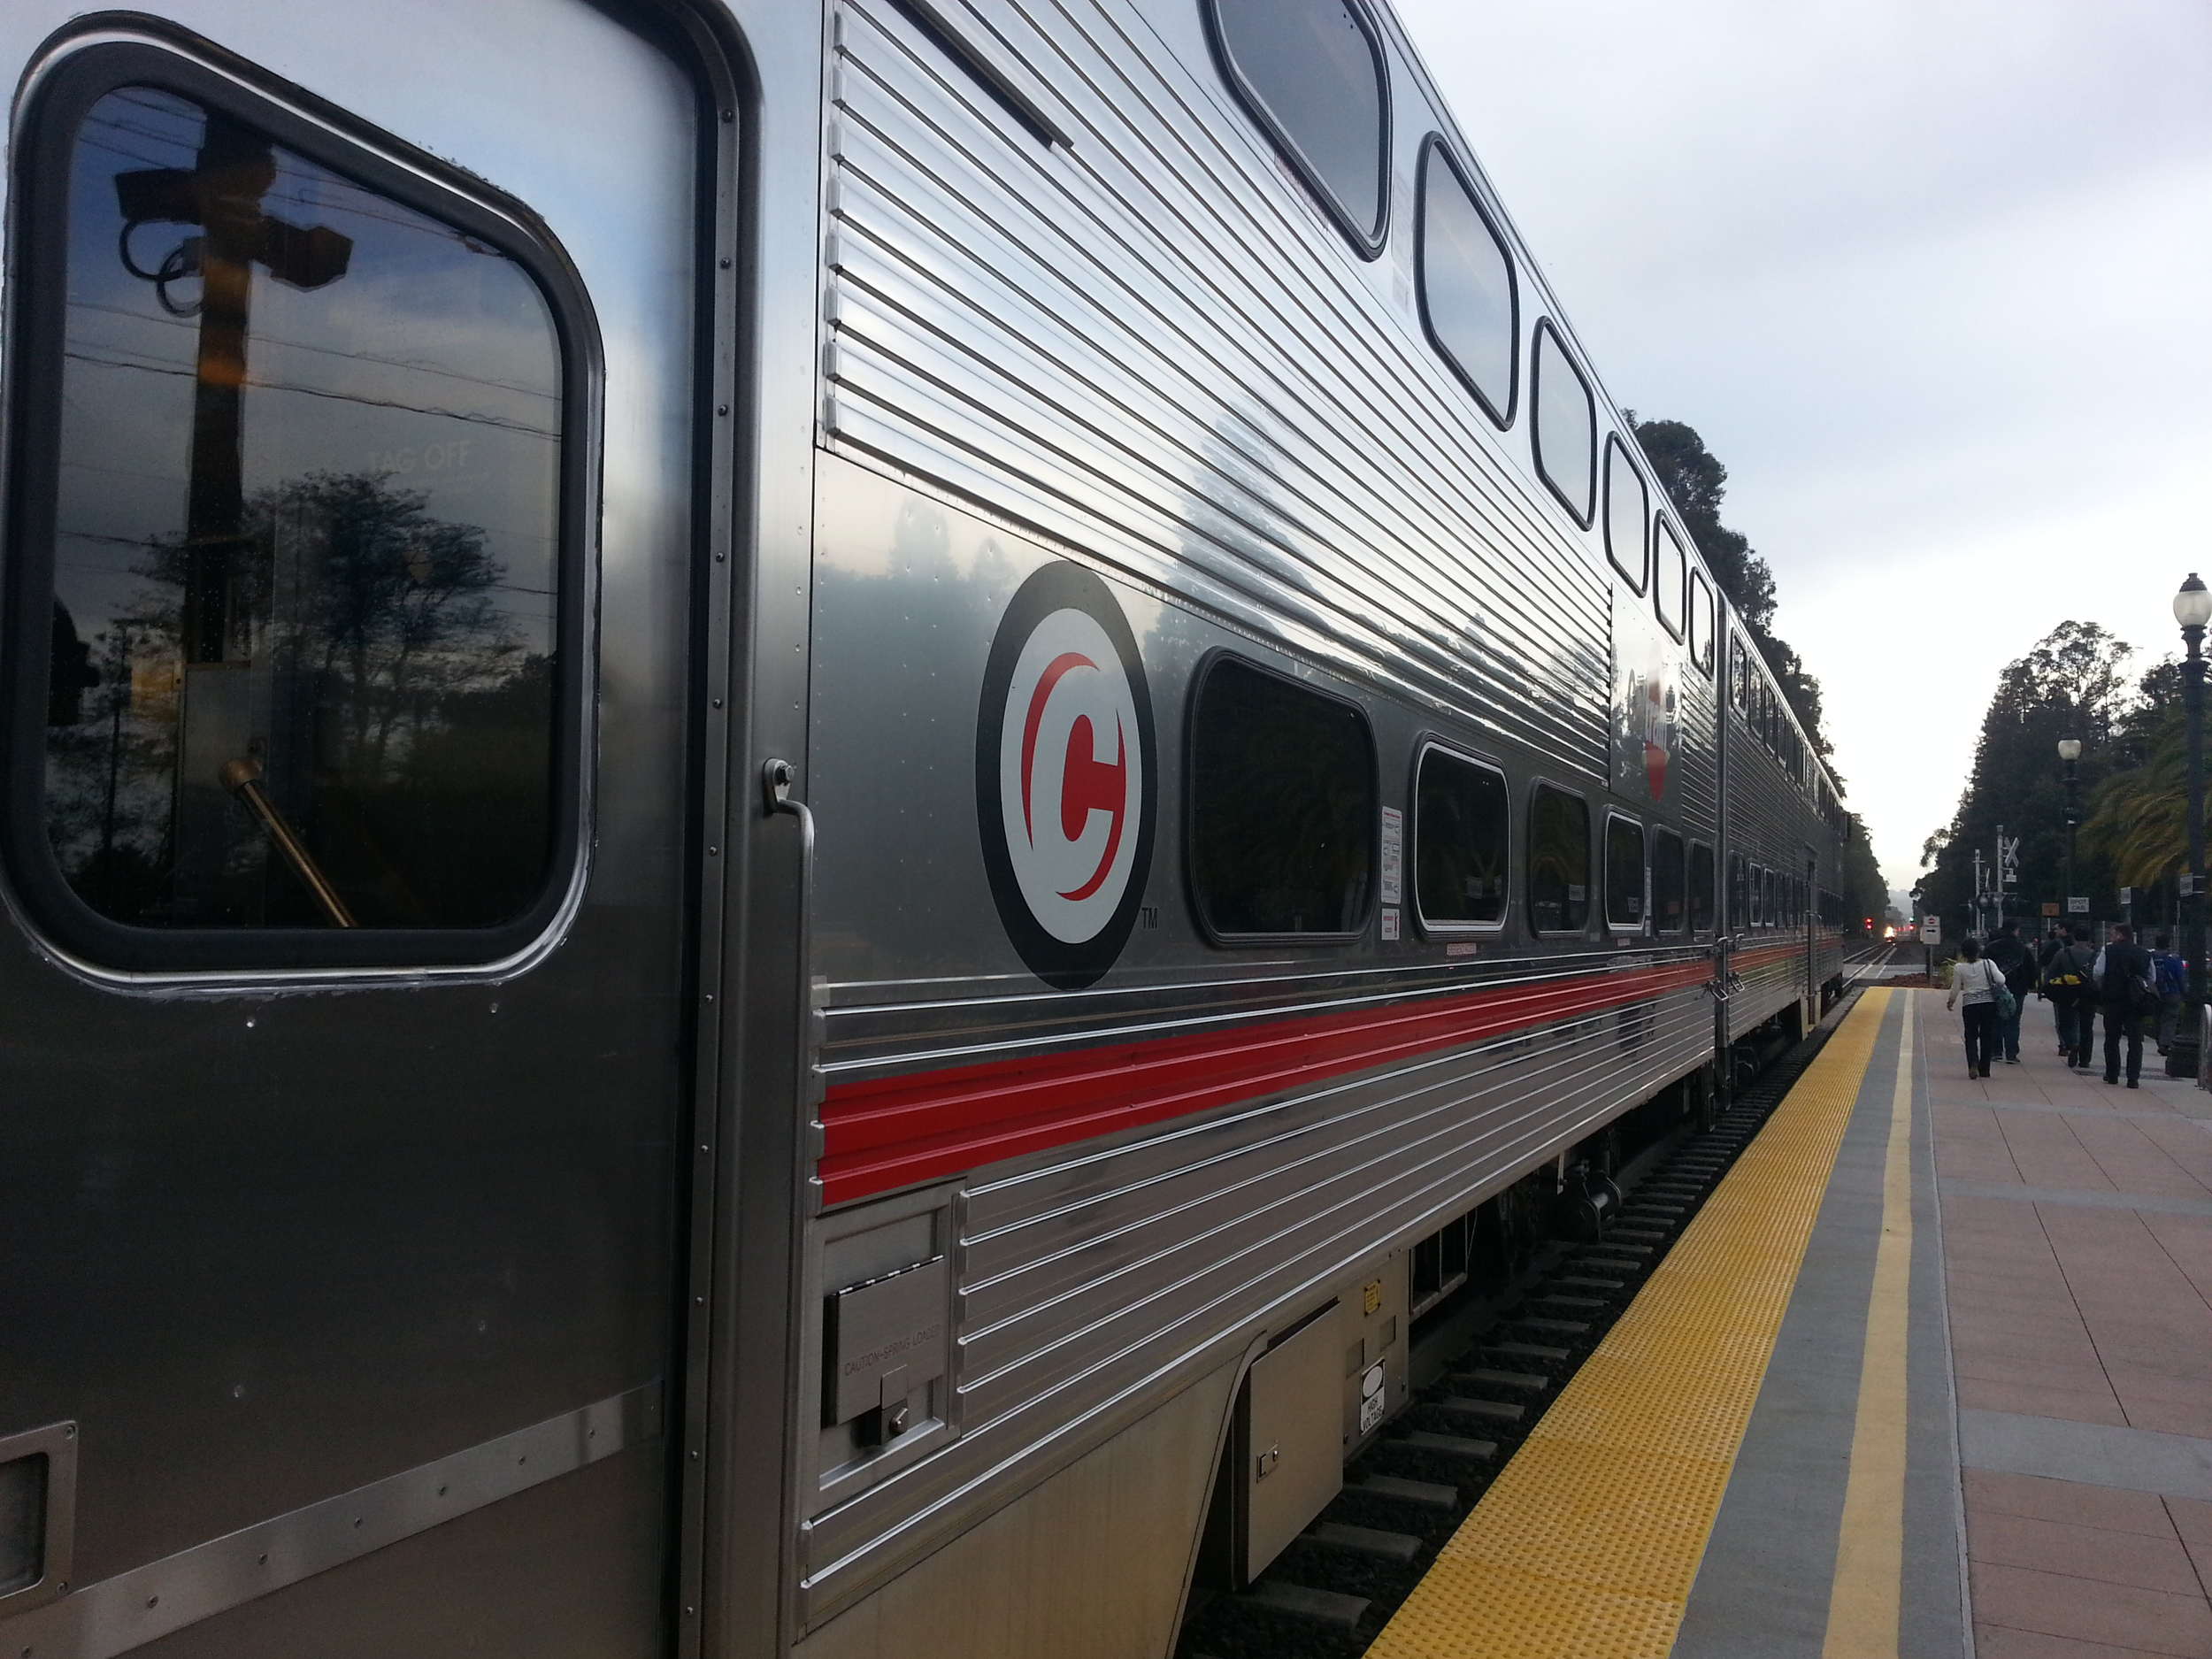 Northboard caltrain